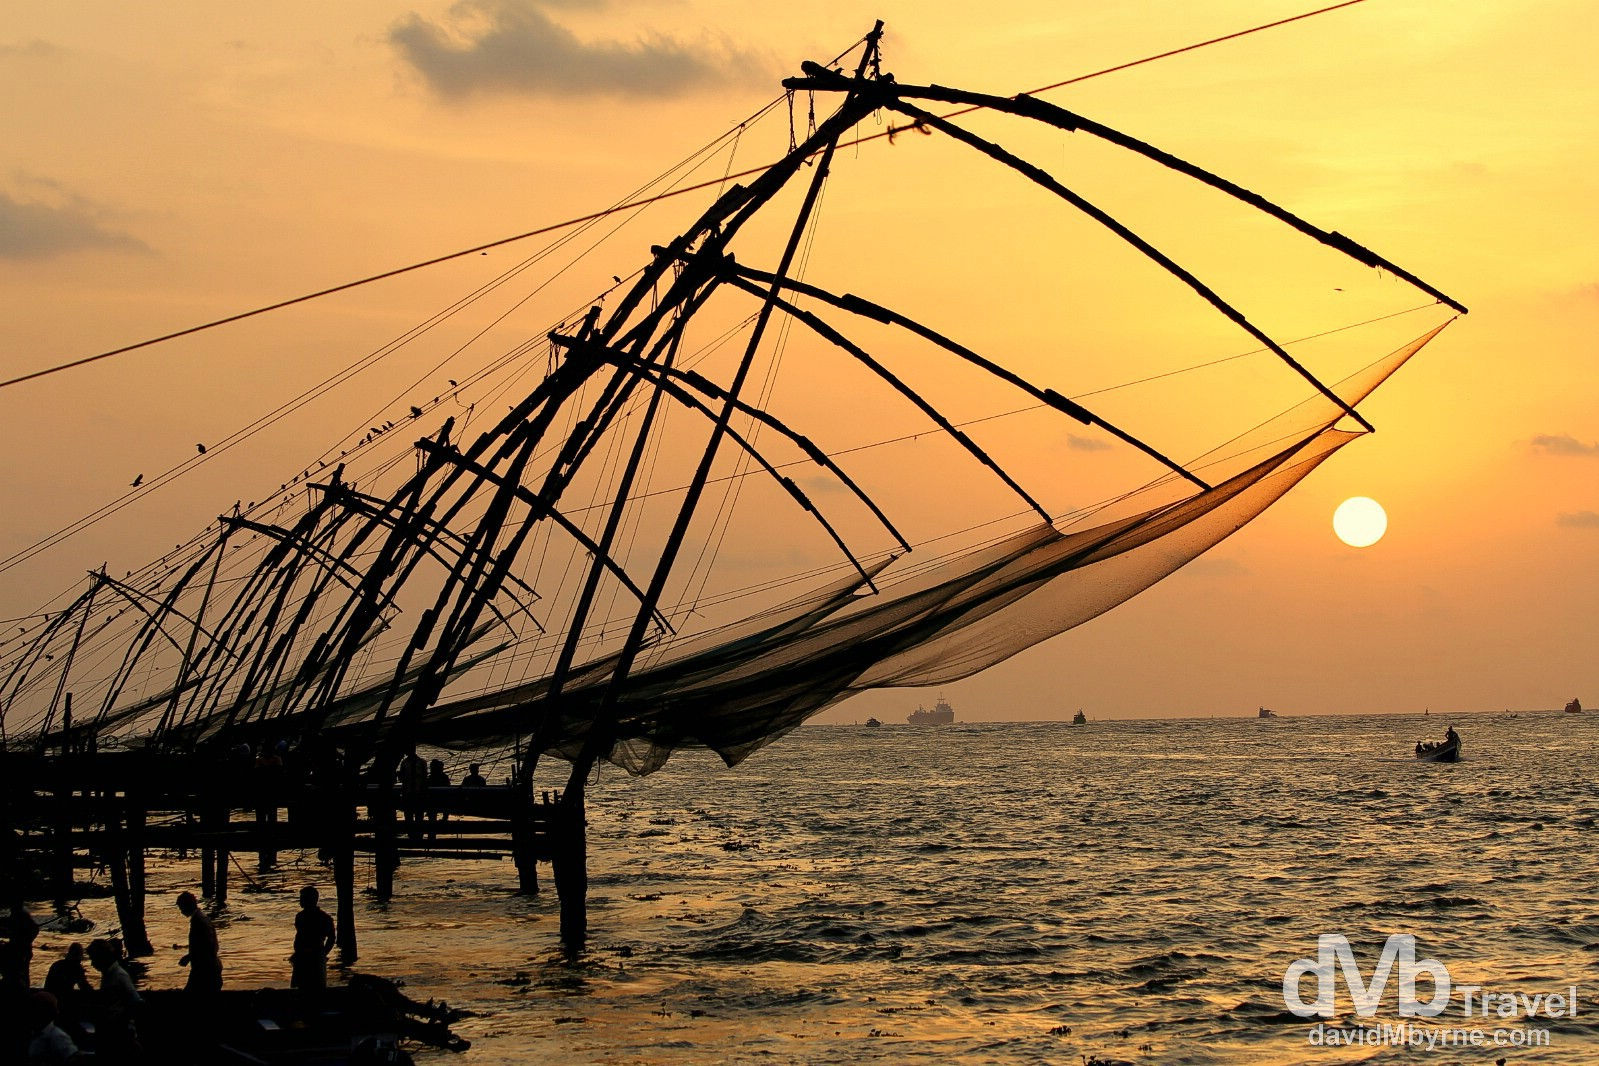 Fort Kochi Cochin Kerala India Worldwide Destination